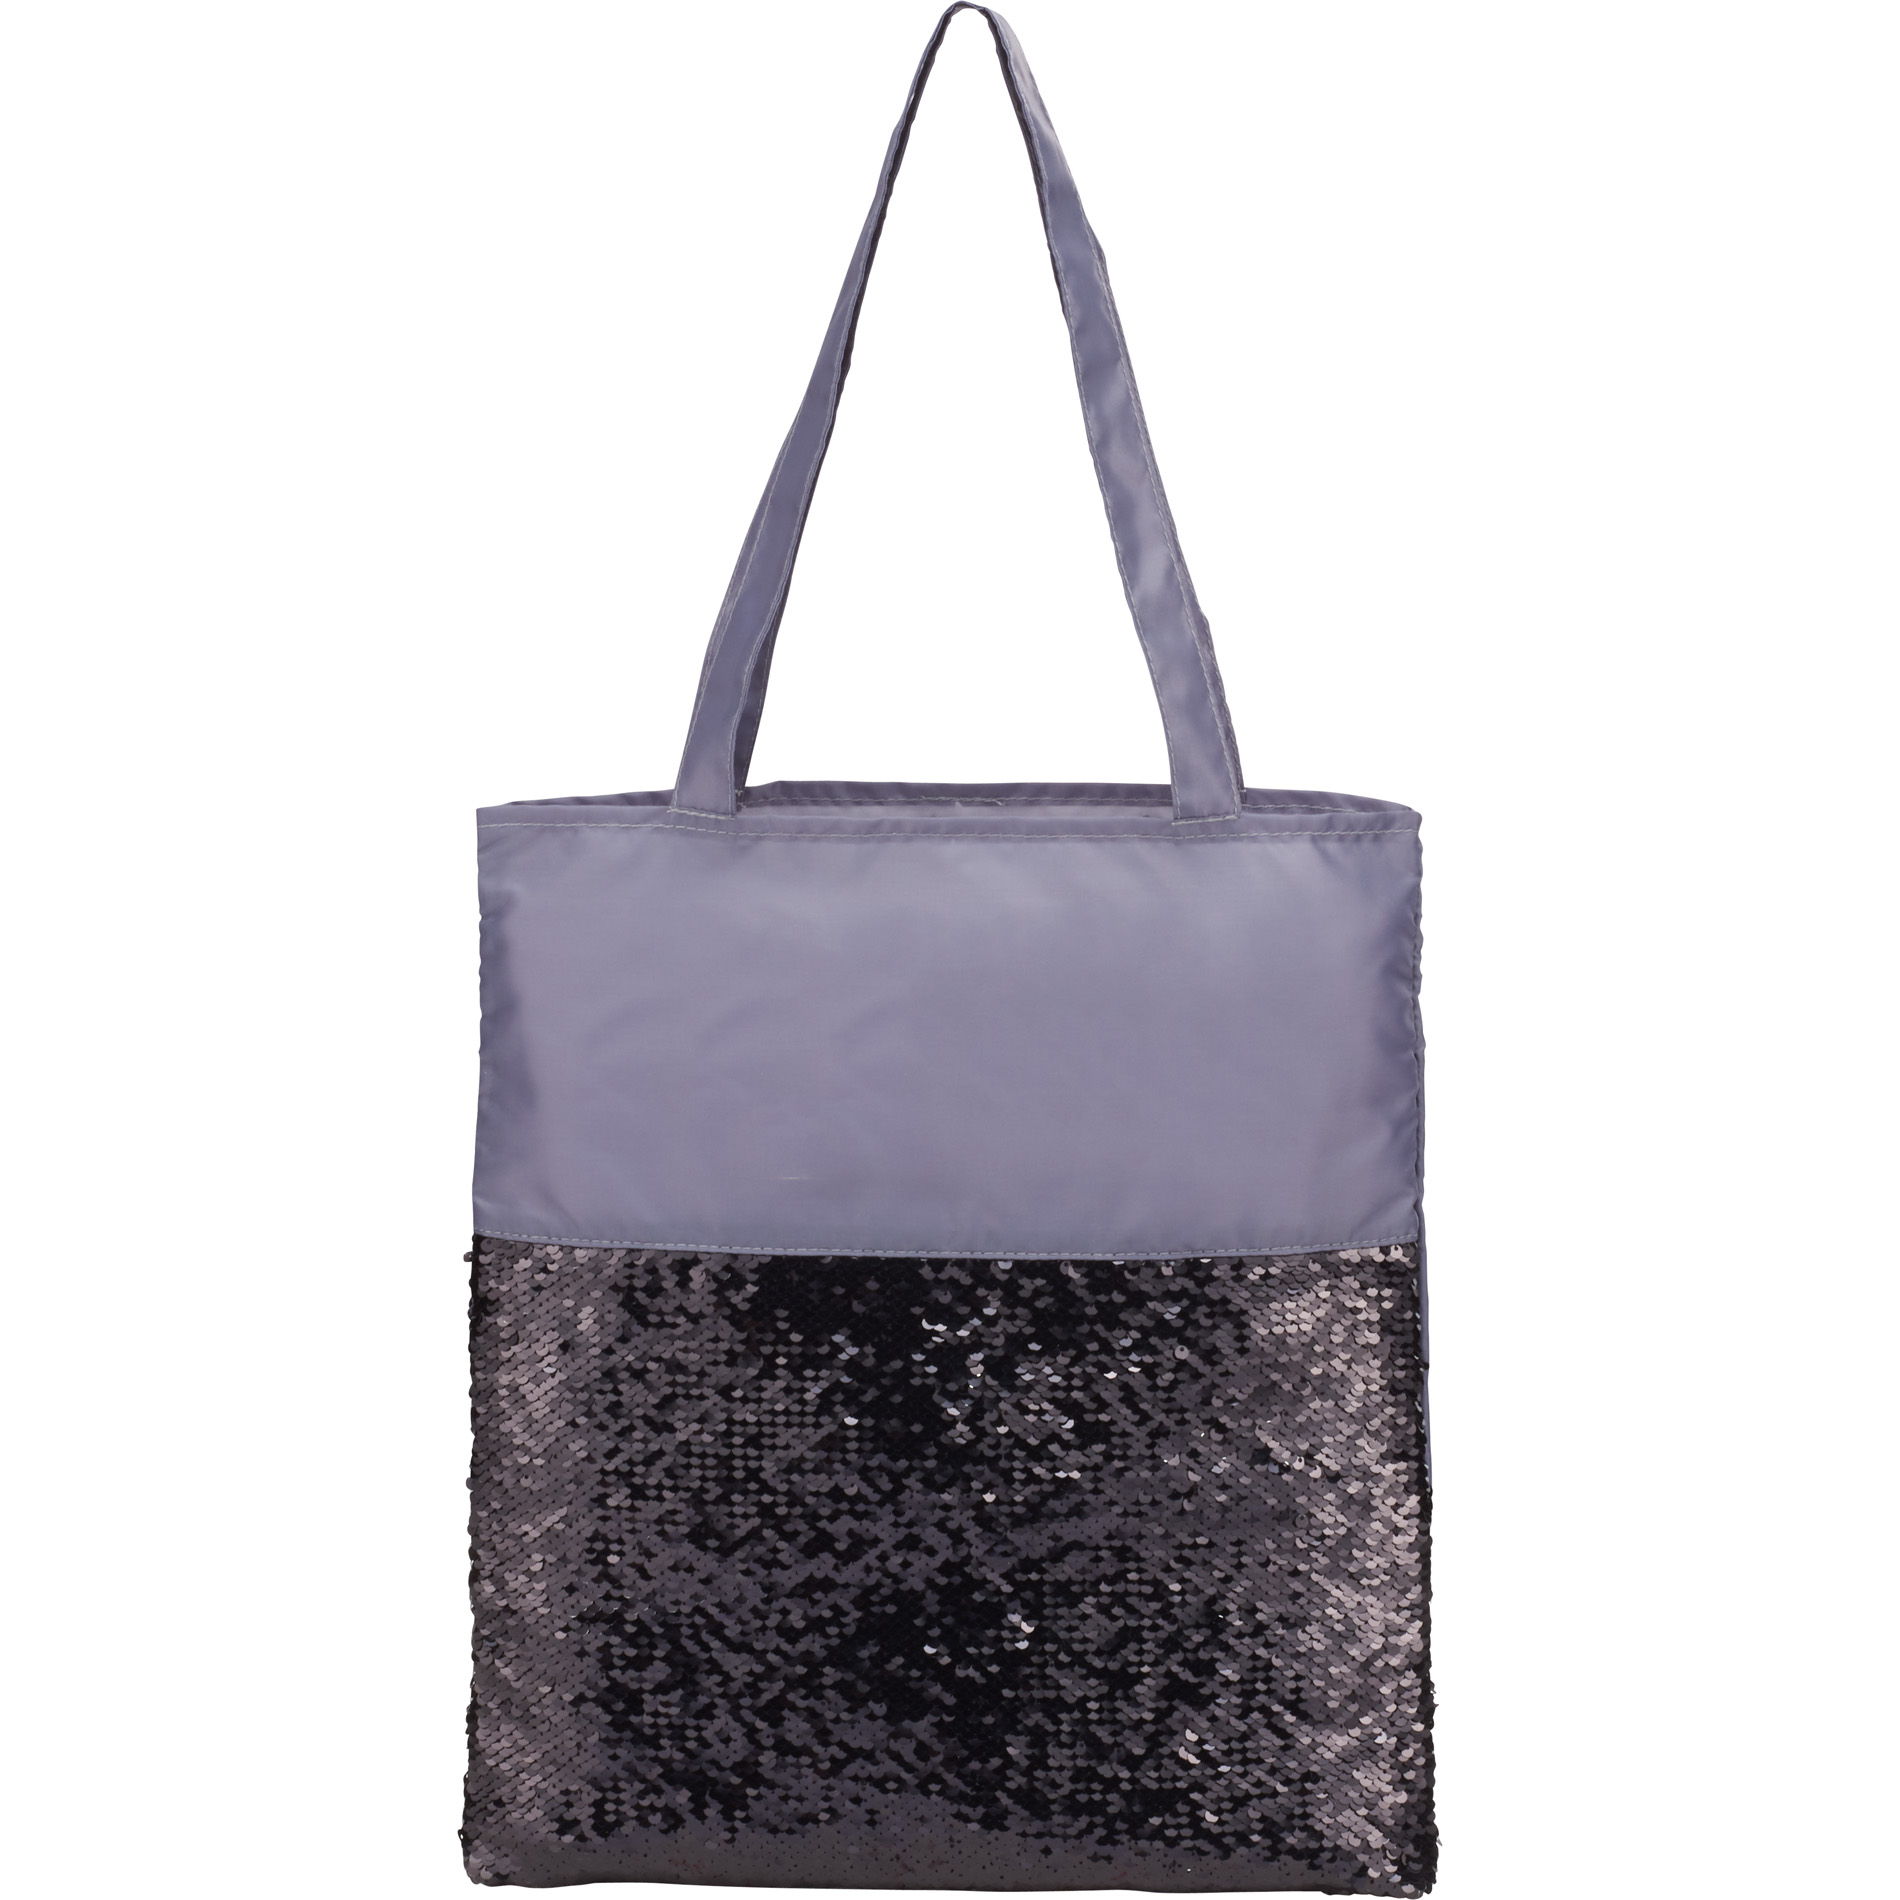 LEEDS 2150-97 - Mermaid Sequin Tote